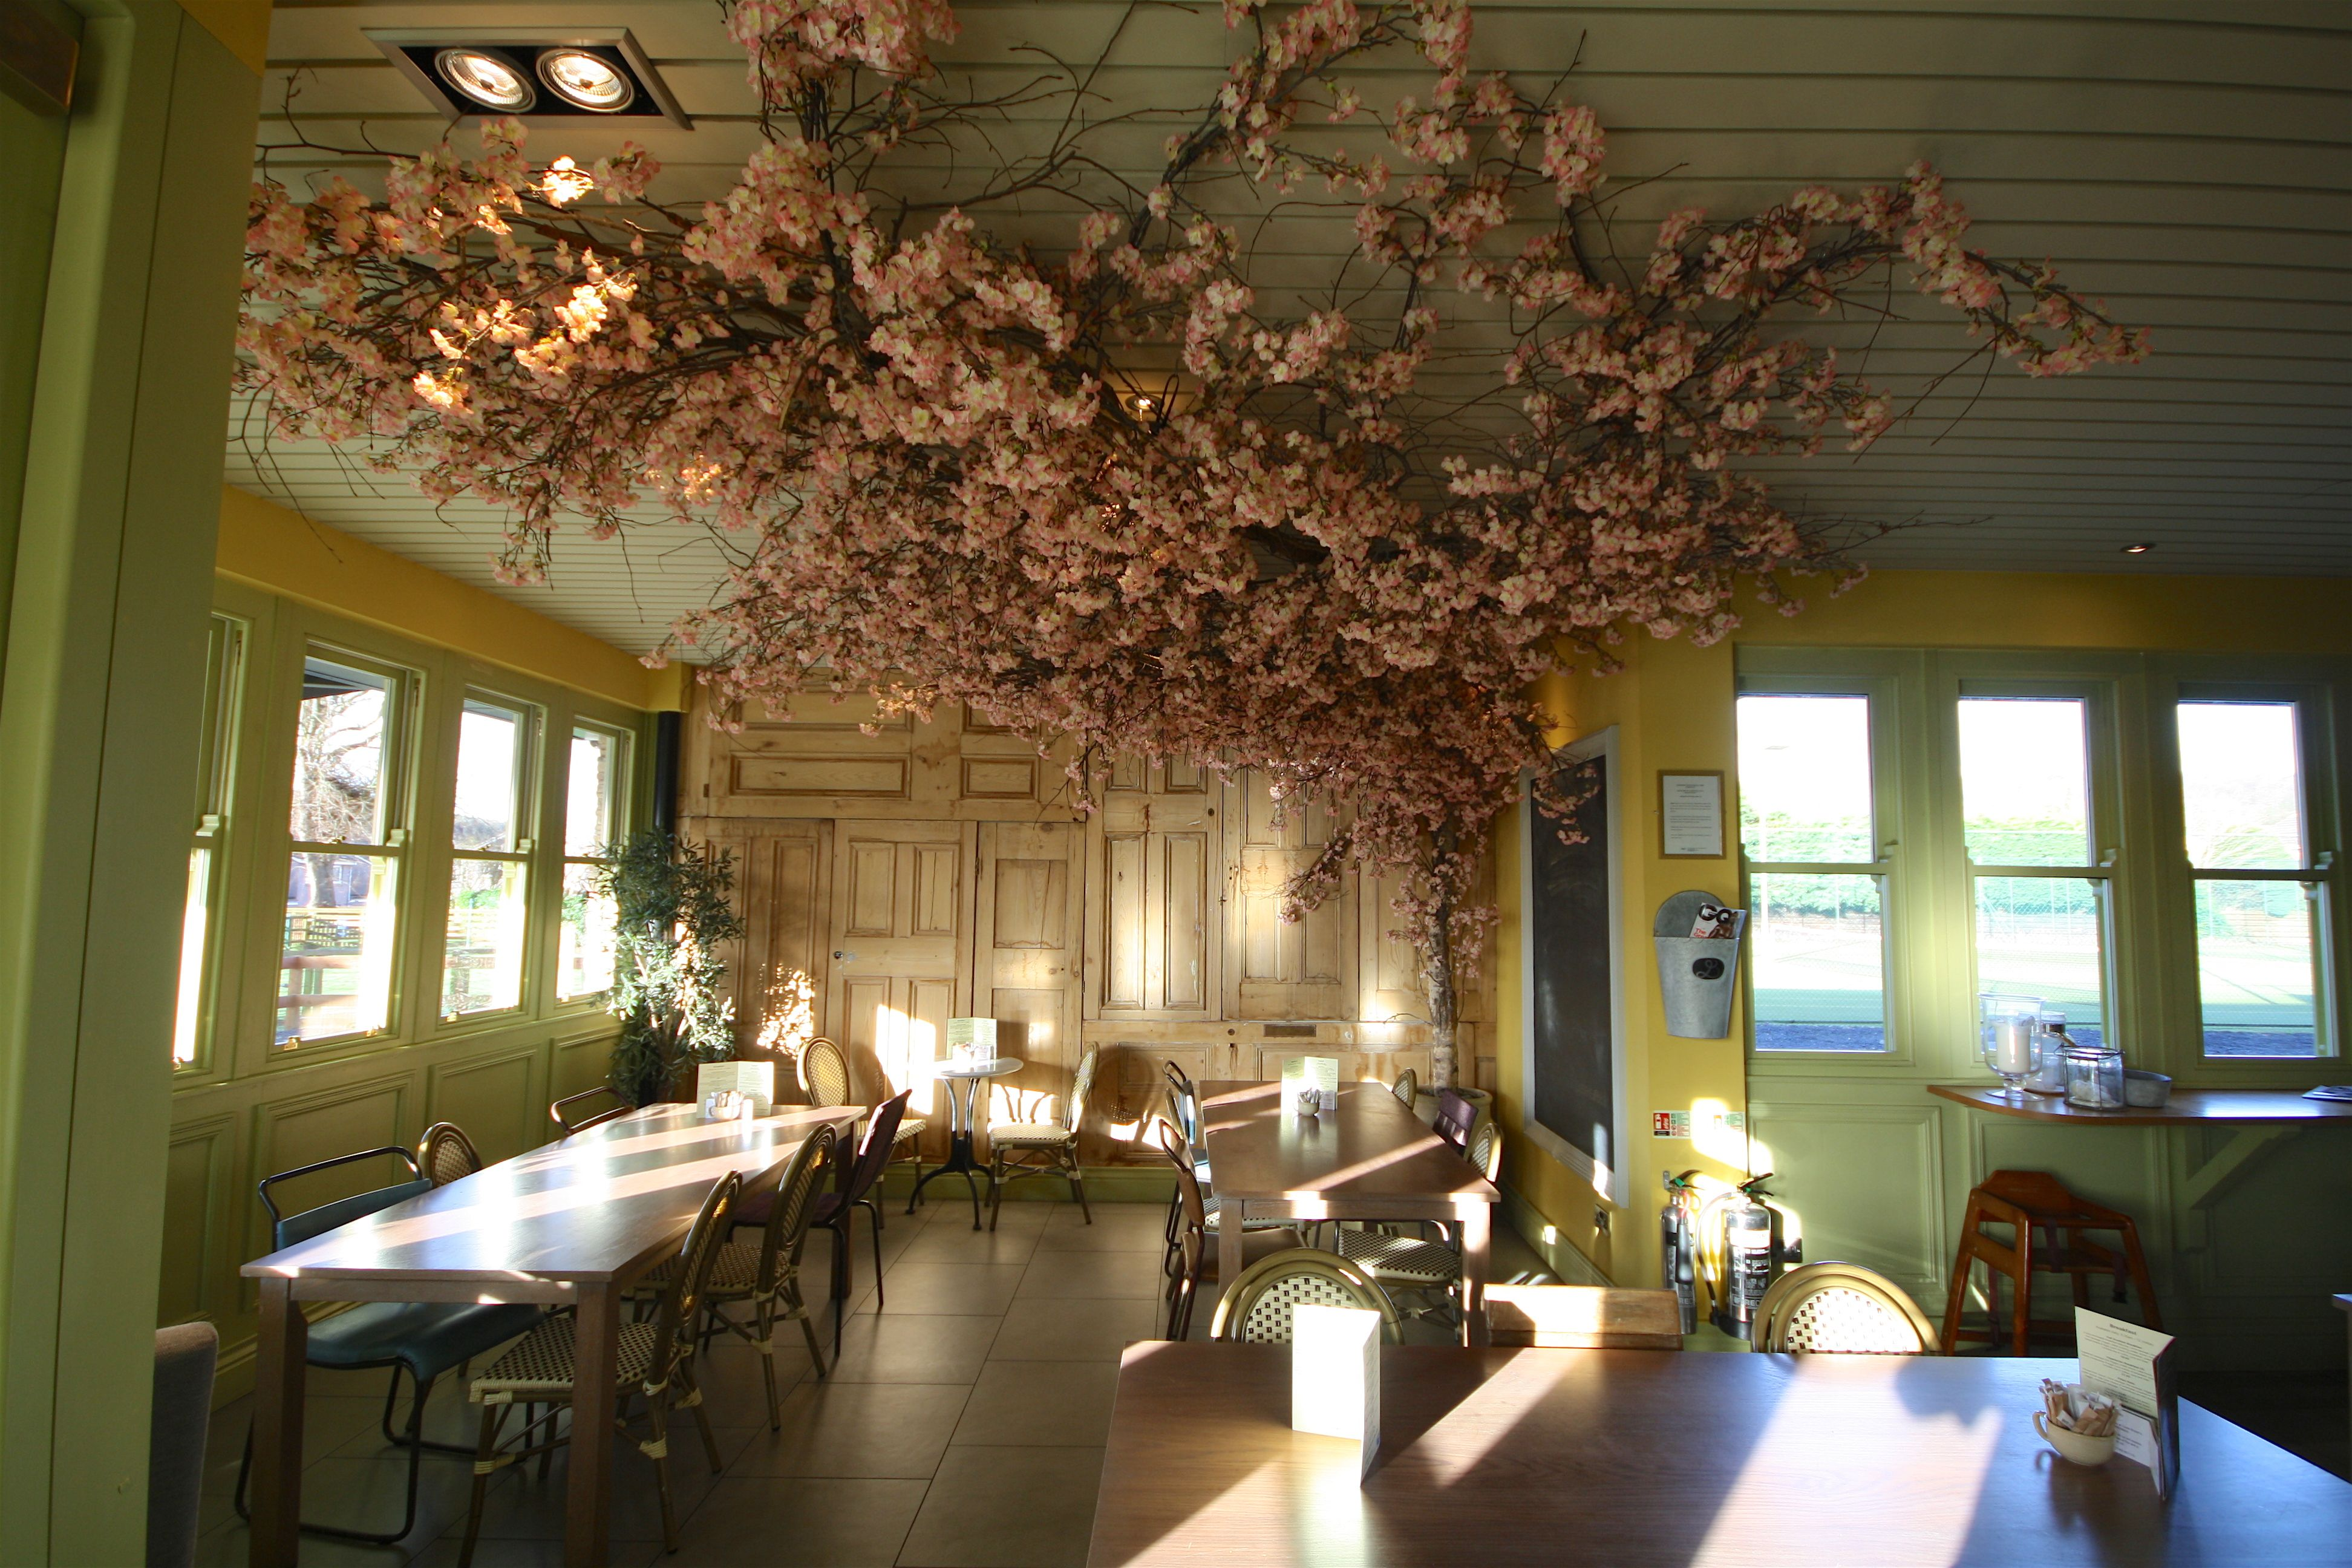 Artificial Pink Blossom Tree Was Design And Built For Restaurant Bar Area At Louis Brown Dalgety Pink Blossom Tree Blossom Trees Artificial Cherry Blossom Tree